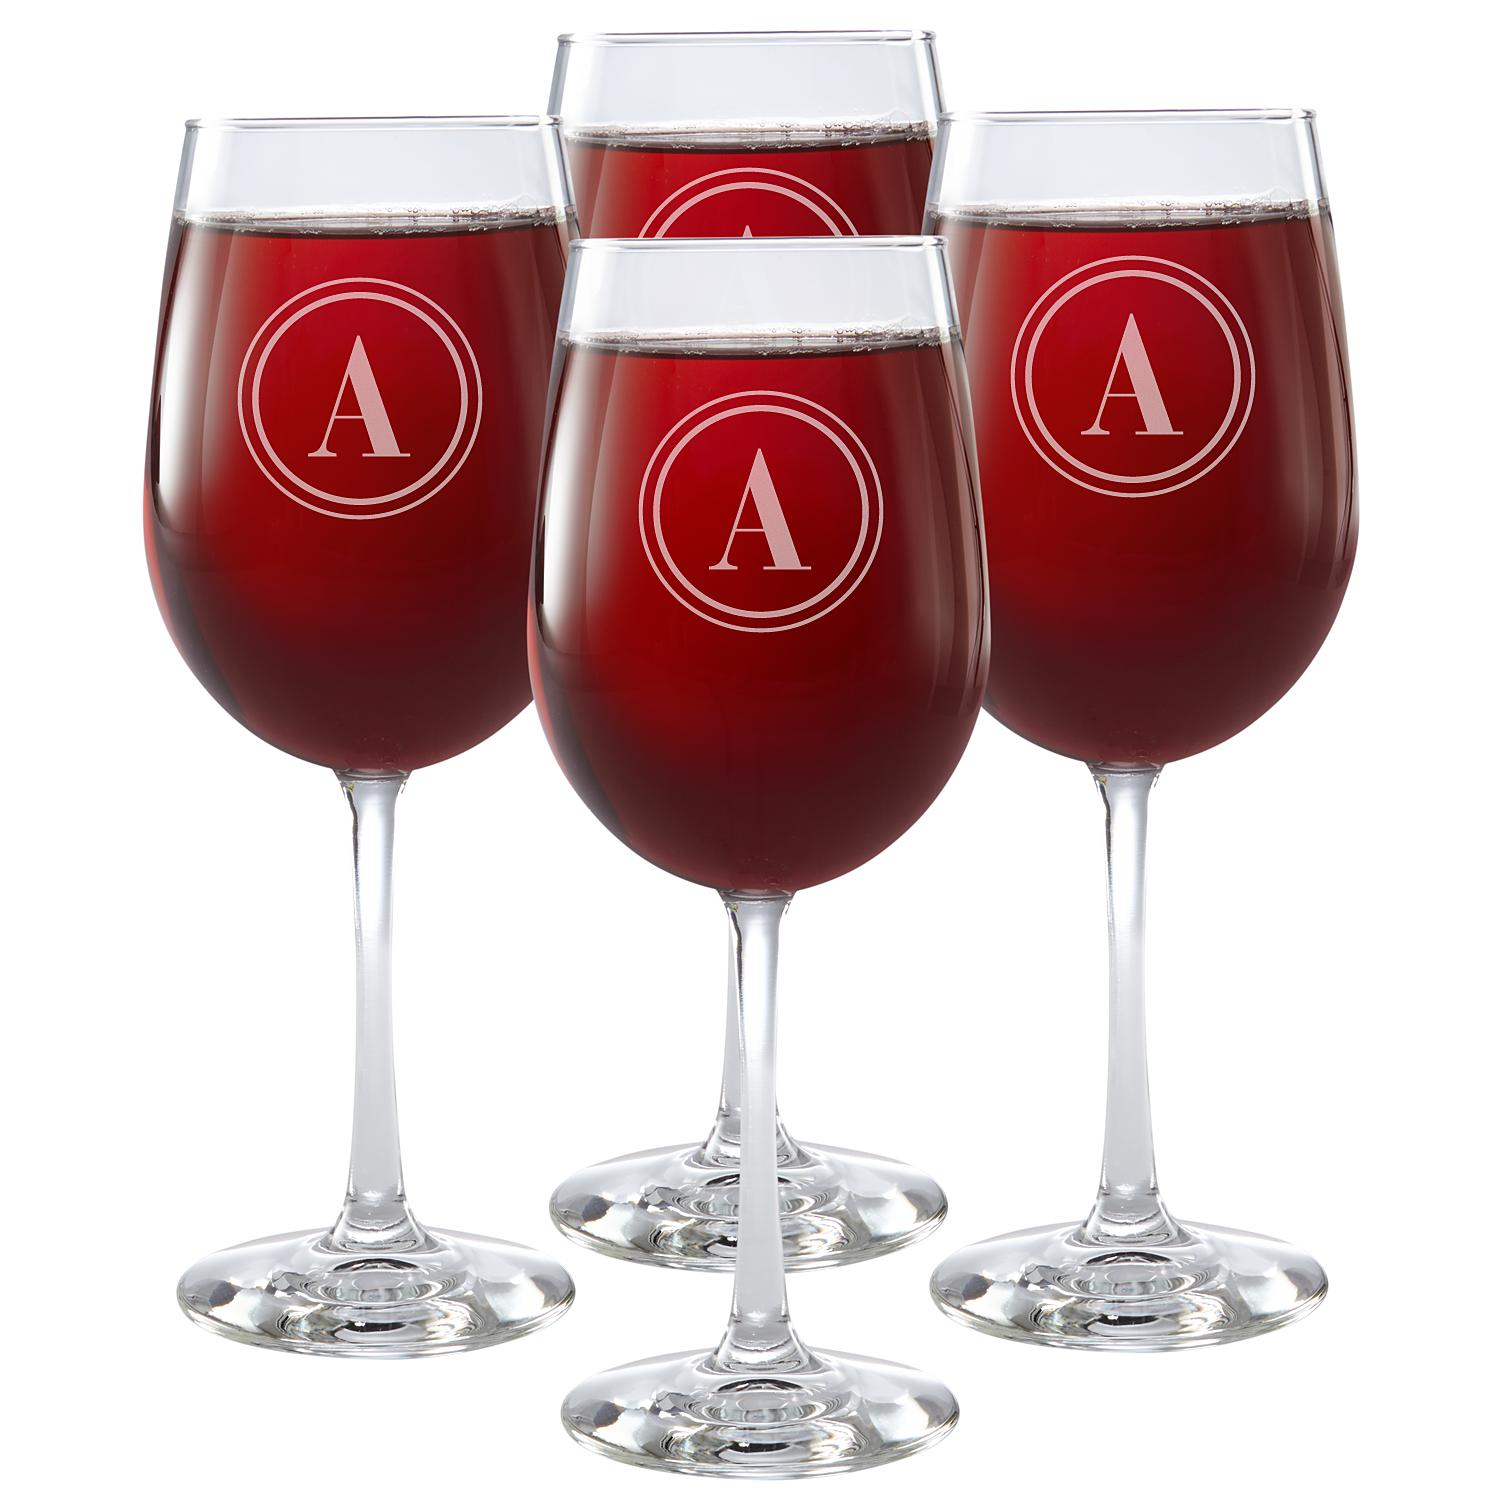 Classic Monogram Stemware Wine Glasses Set Of 4 Circle Wine Glass Wine Glass Set Wine